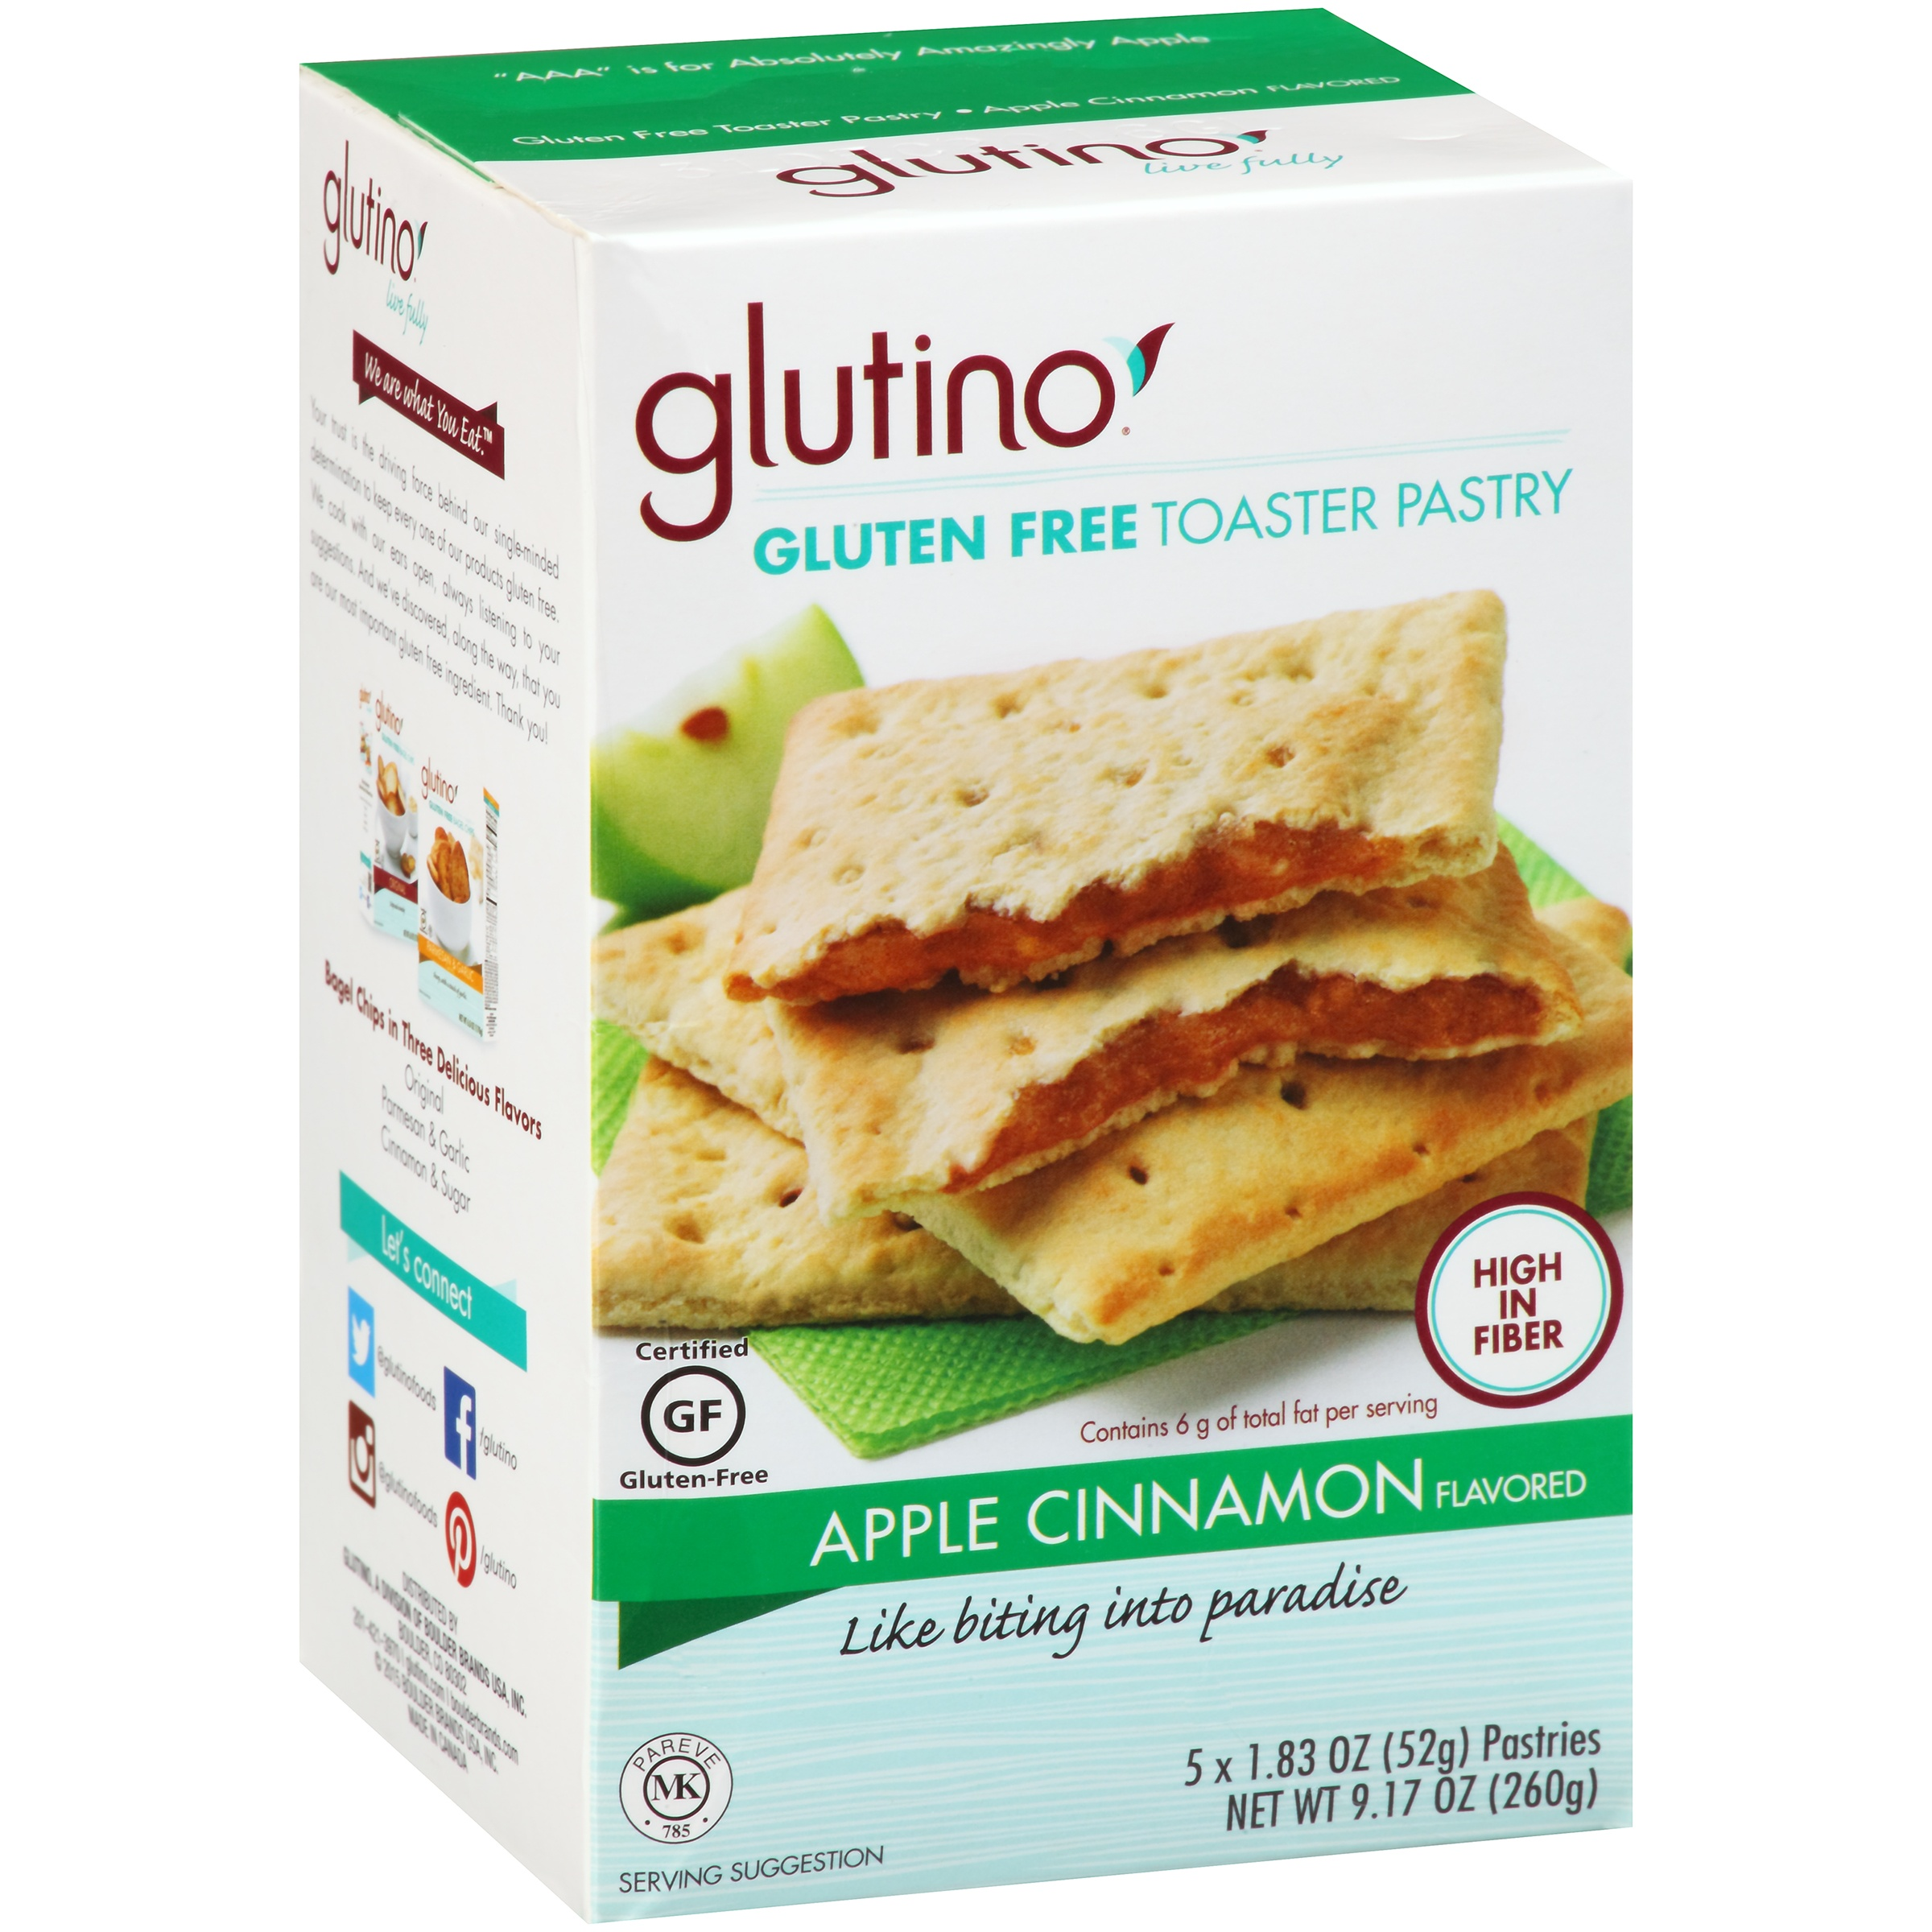 Glutino Gluten Free Toaster Pastry Apple Cinnamon, 5 ct by Glutino, A Boulder Brands USA, Inc.